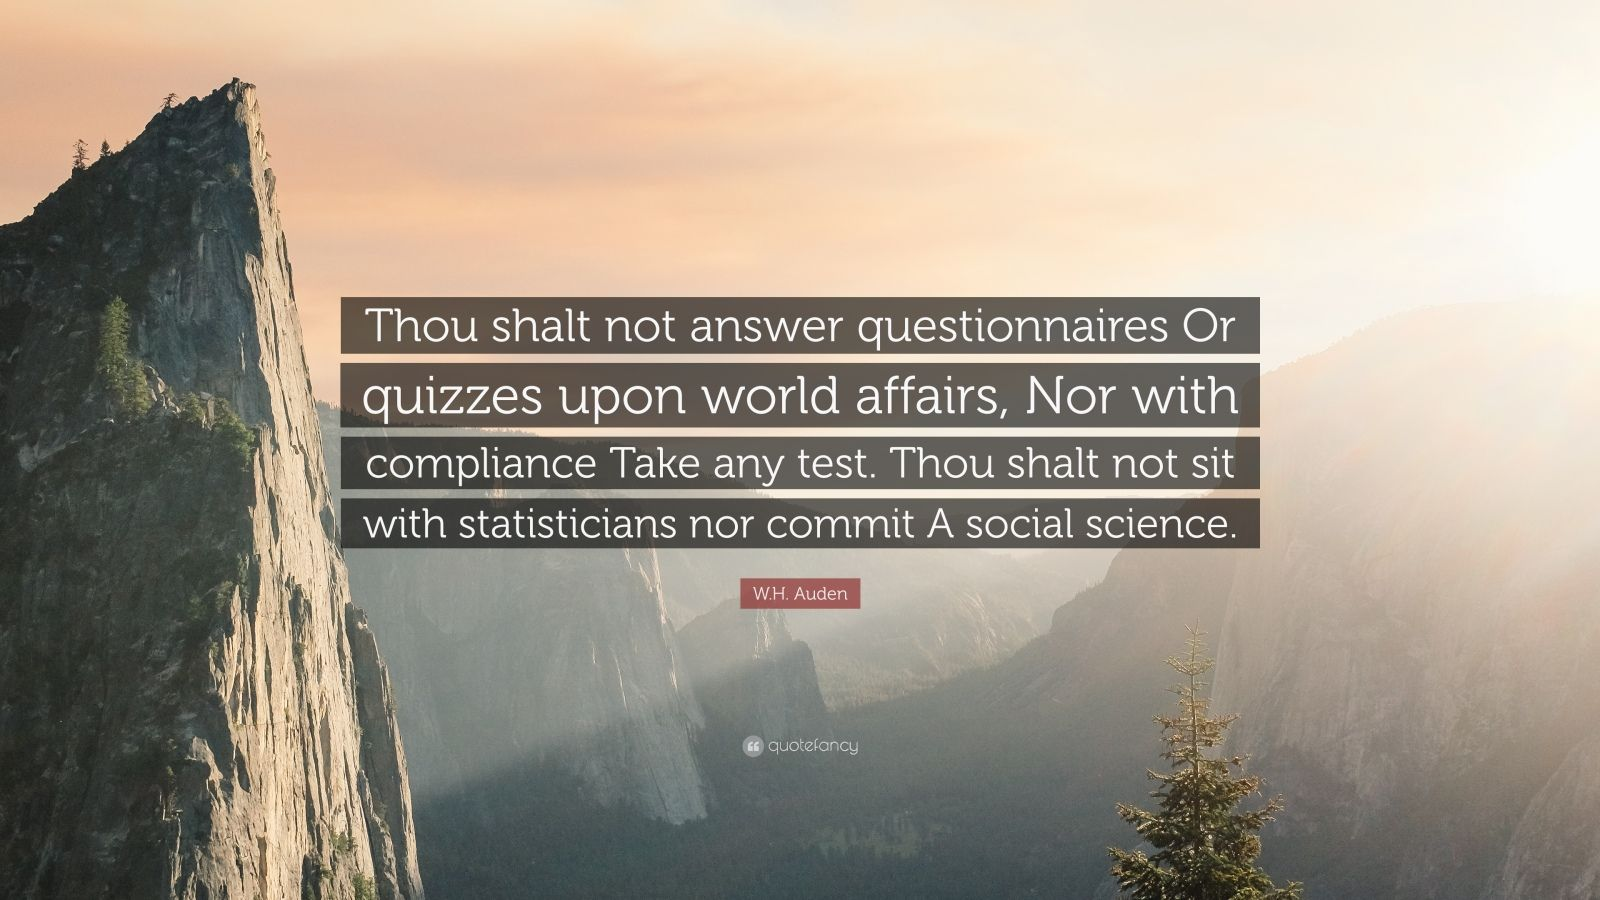 """W.H. Auden Quote: """"Thou shalt not answer questionnaires Or quizzes upon world affairs, Nor with compliance Take any test. Thou shalt not sit with statisticians nor commit A social science."""""""